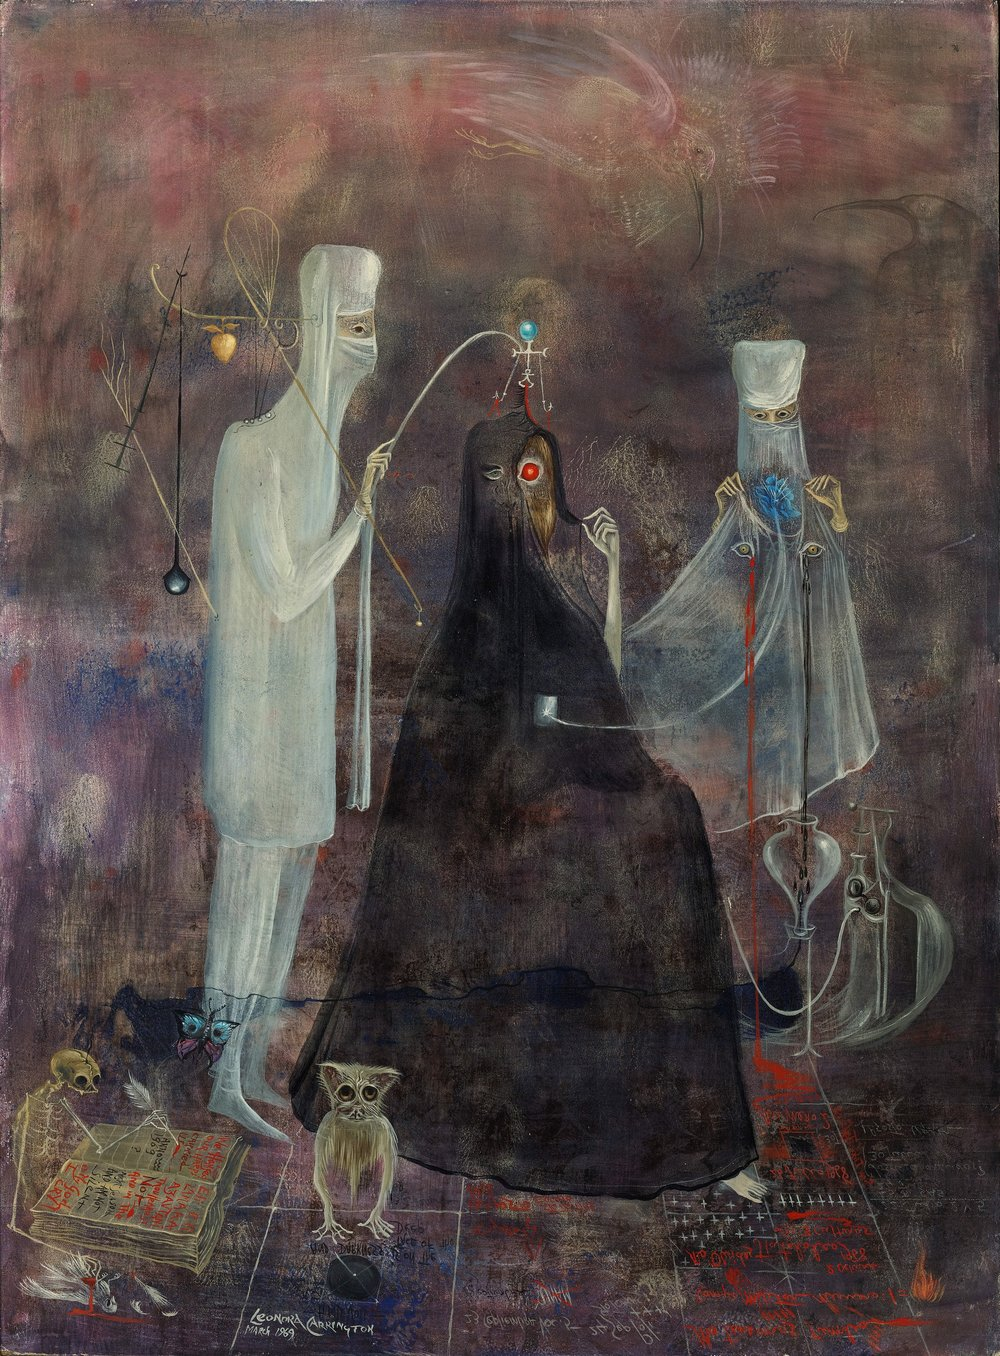 FEATURED MUSEUM EXHIBITION   Leonora Carrington | Magical Tales   October 11, 2018 — February 3, 2019 | Museo de Arte Contemporáneo (MARCO), Monterrey, Mexico